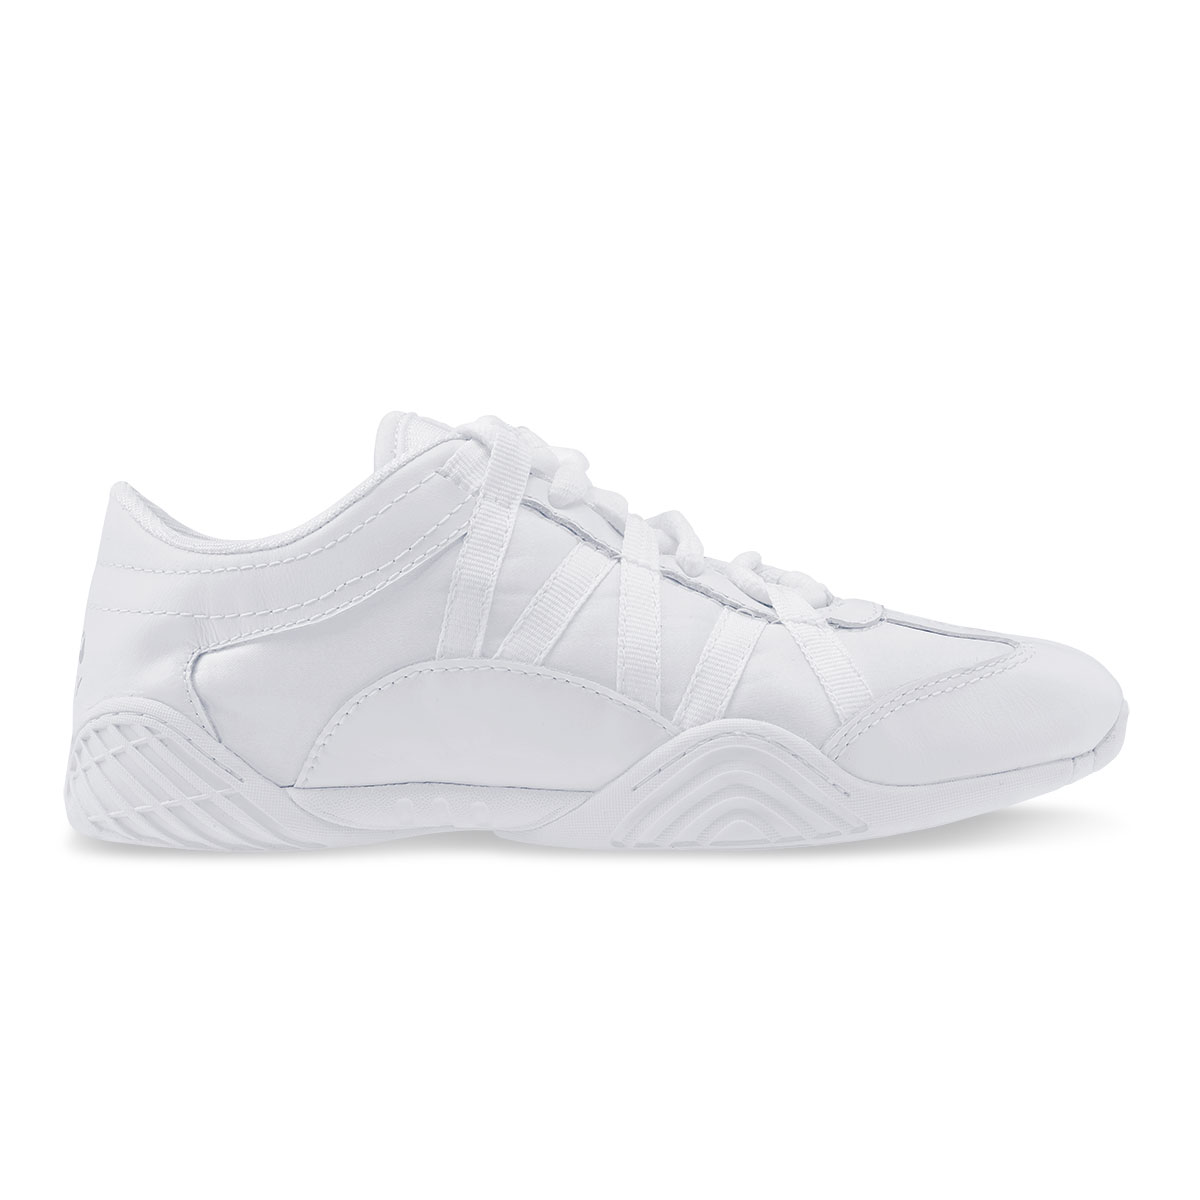 Nfinity Evolution Cheer Shoes On Sale